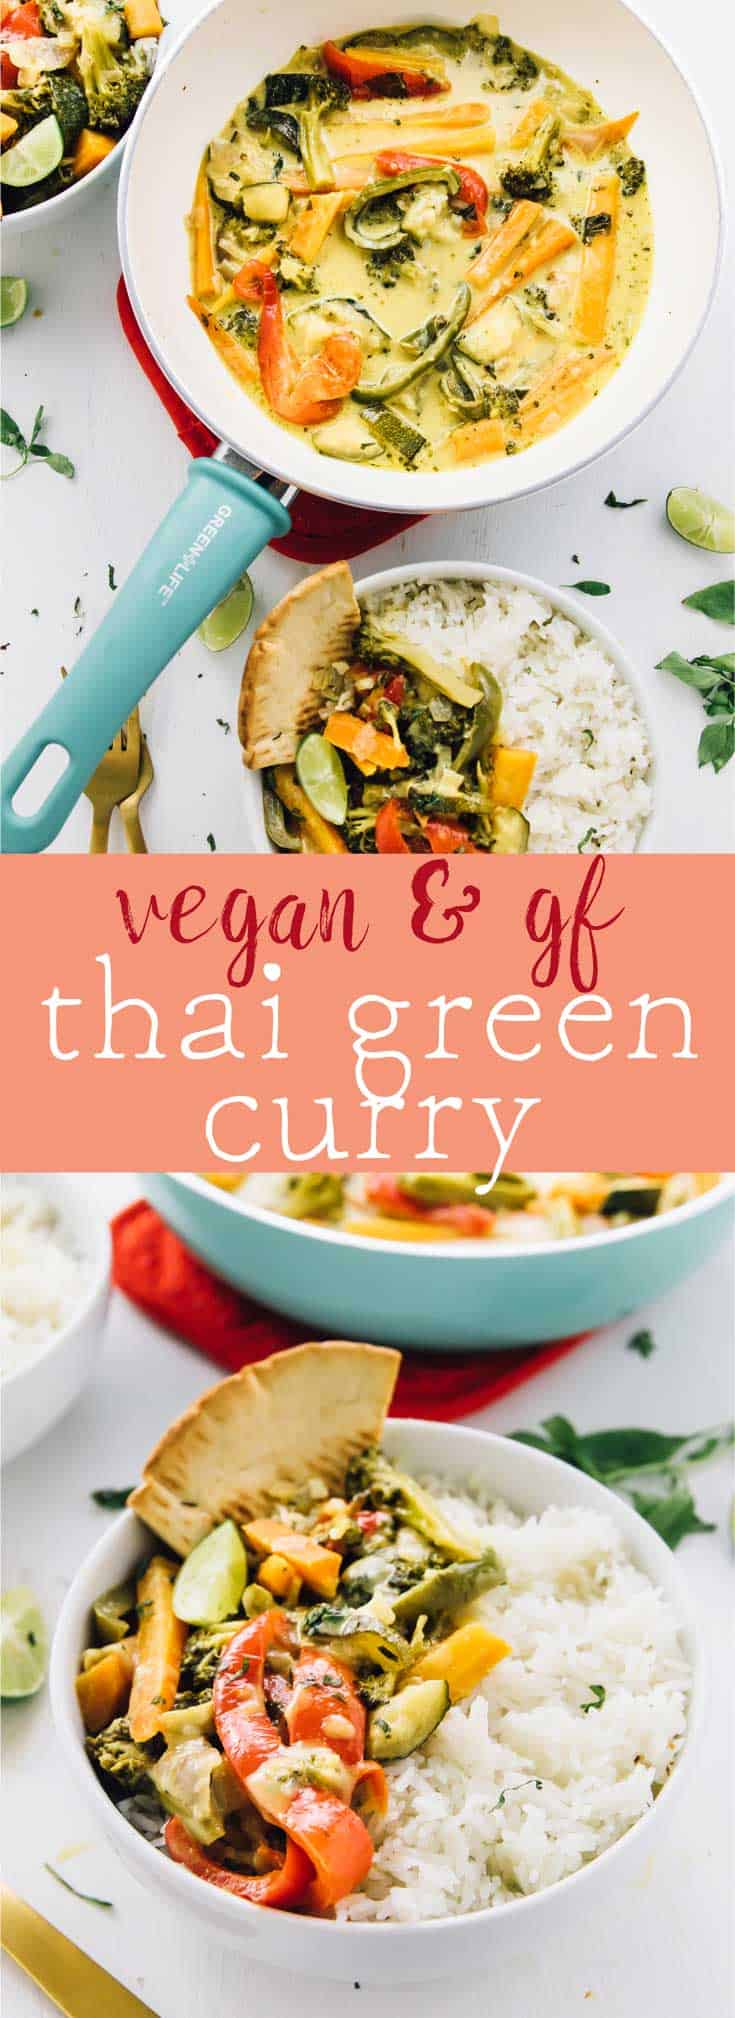 This Thai Green Curry takes only 30 minutes! All it takes is one pot, it's loaded with rich flavours, and is bound to be a crowd pleaser! via https://jessicainthekitchen.com